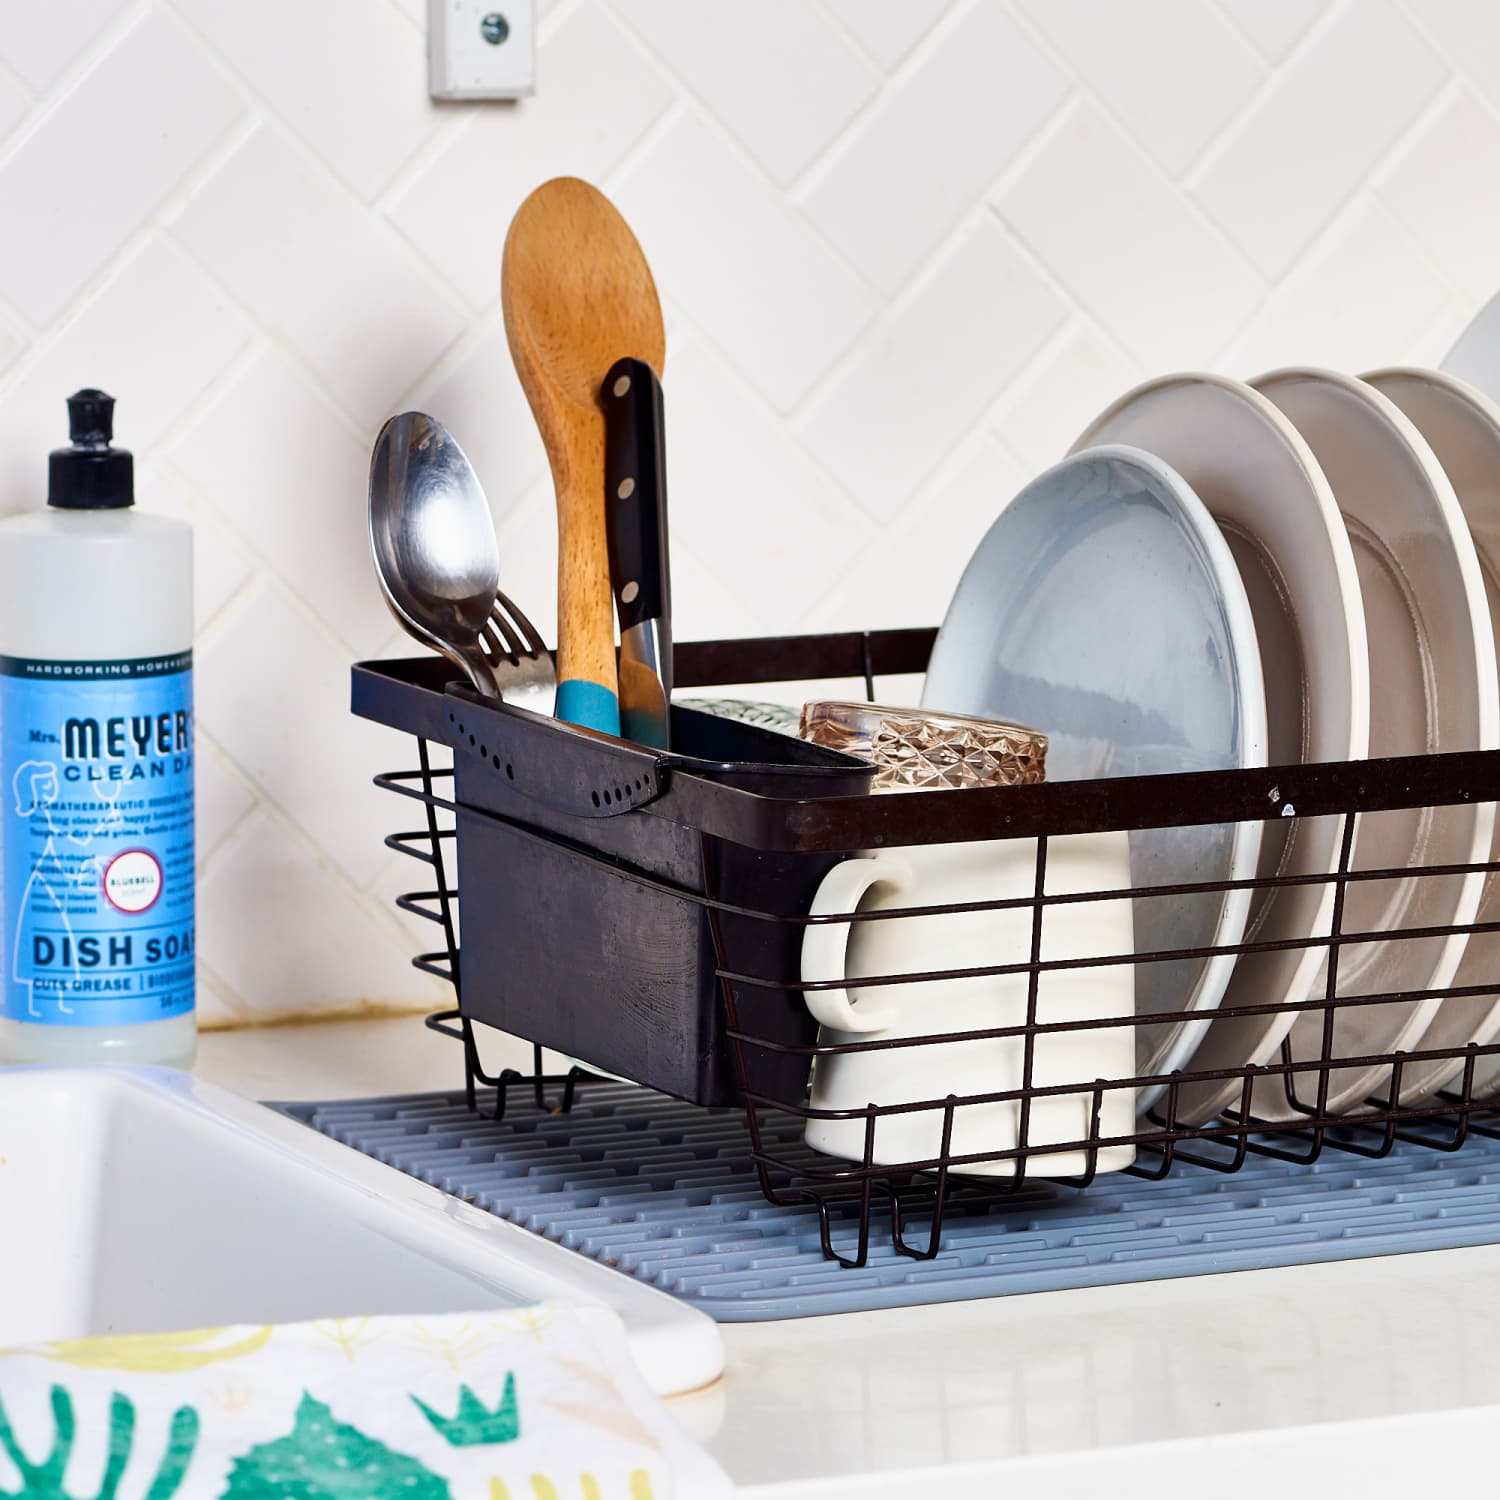 clean your dish rack